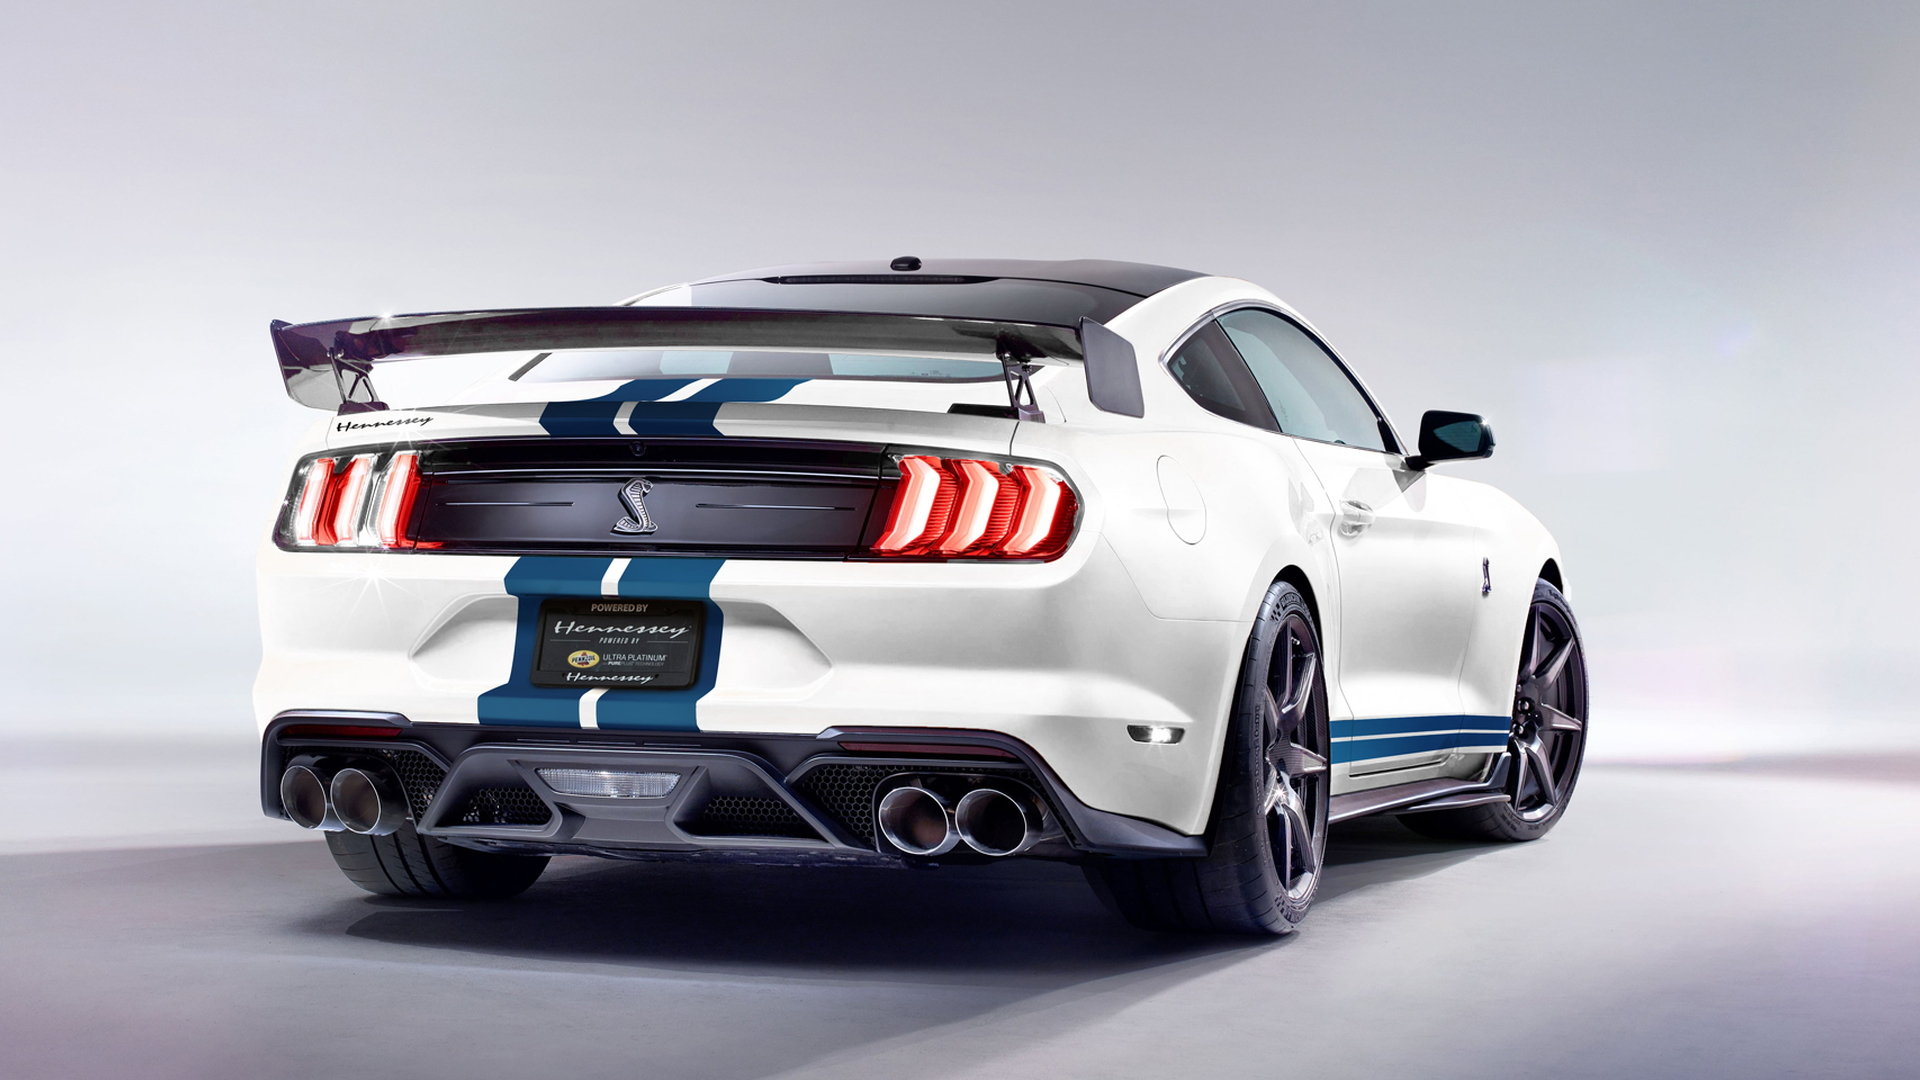 2020 Ford Mustang Shelby GT500 Hennessey Venom 1200